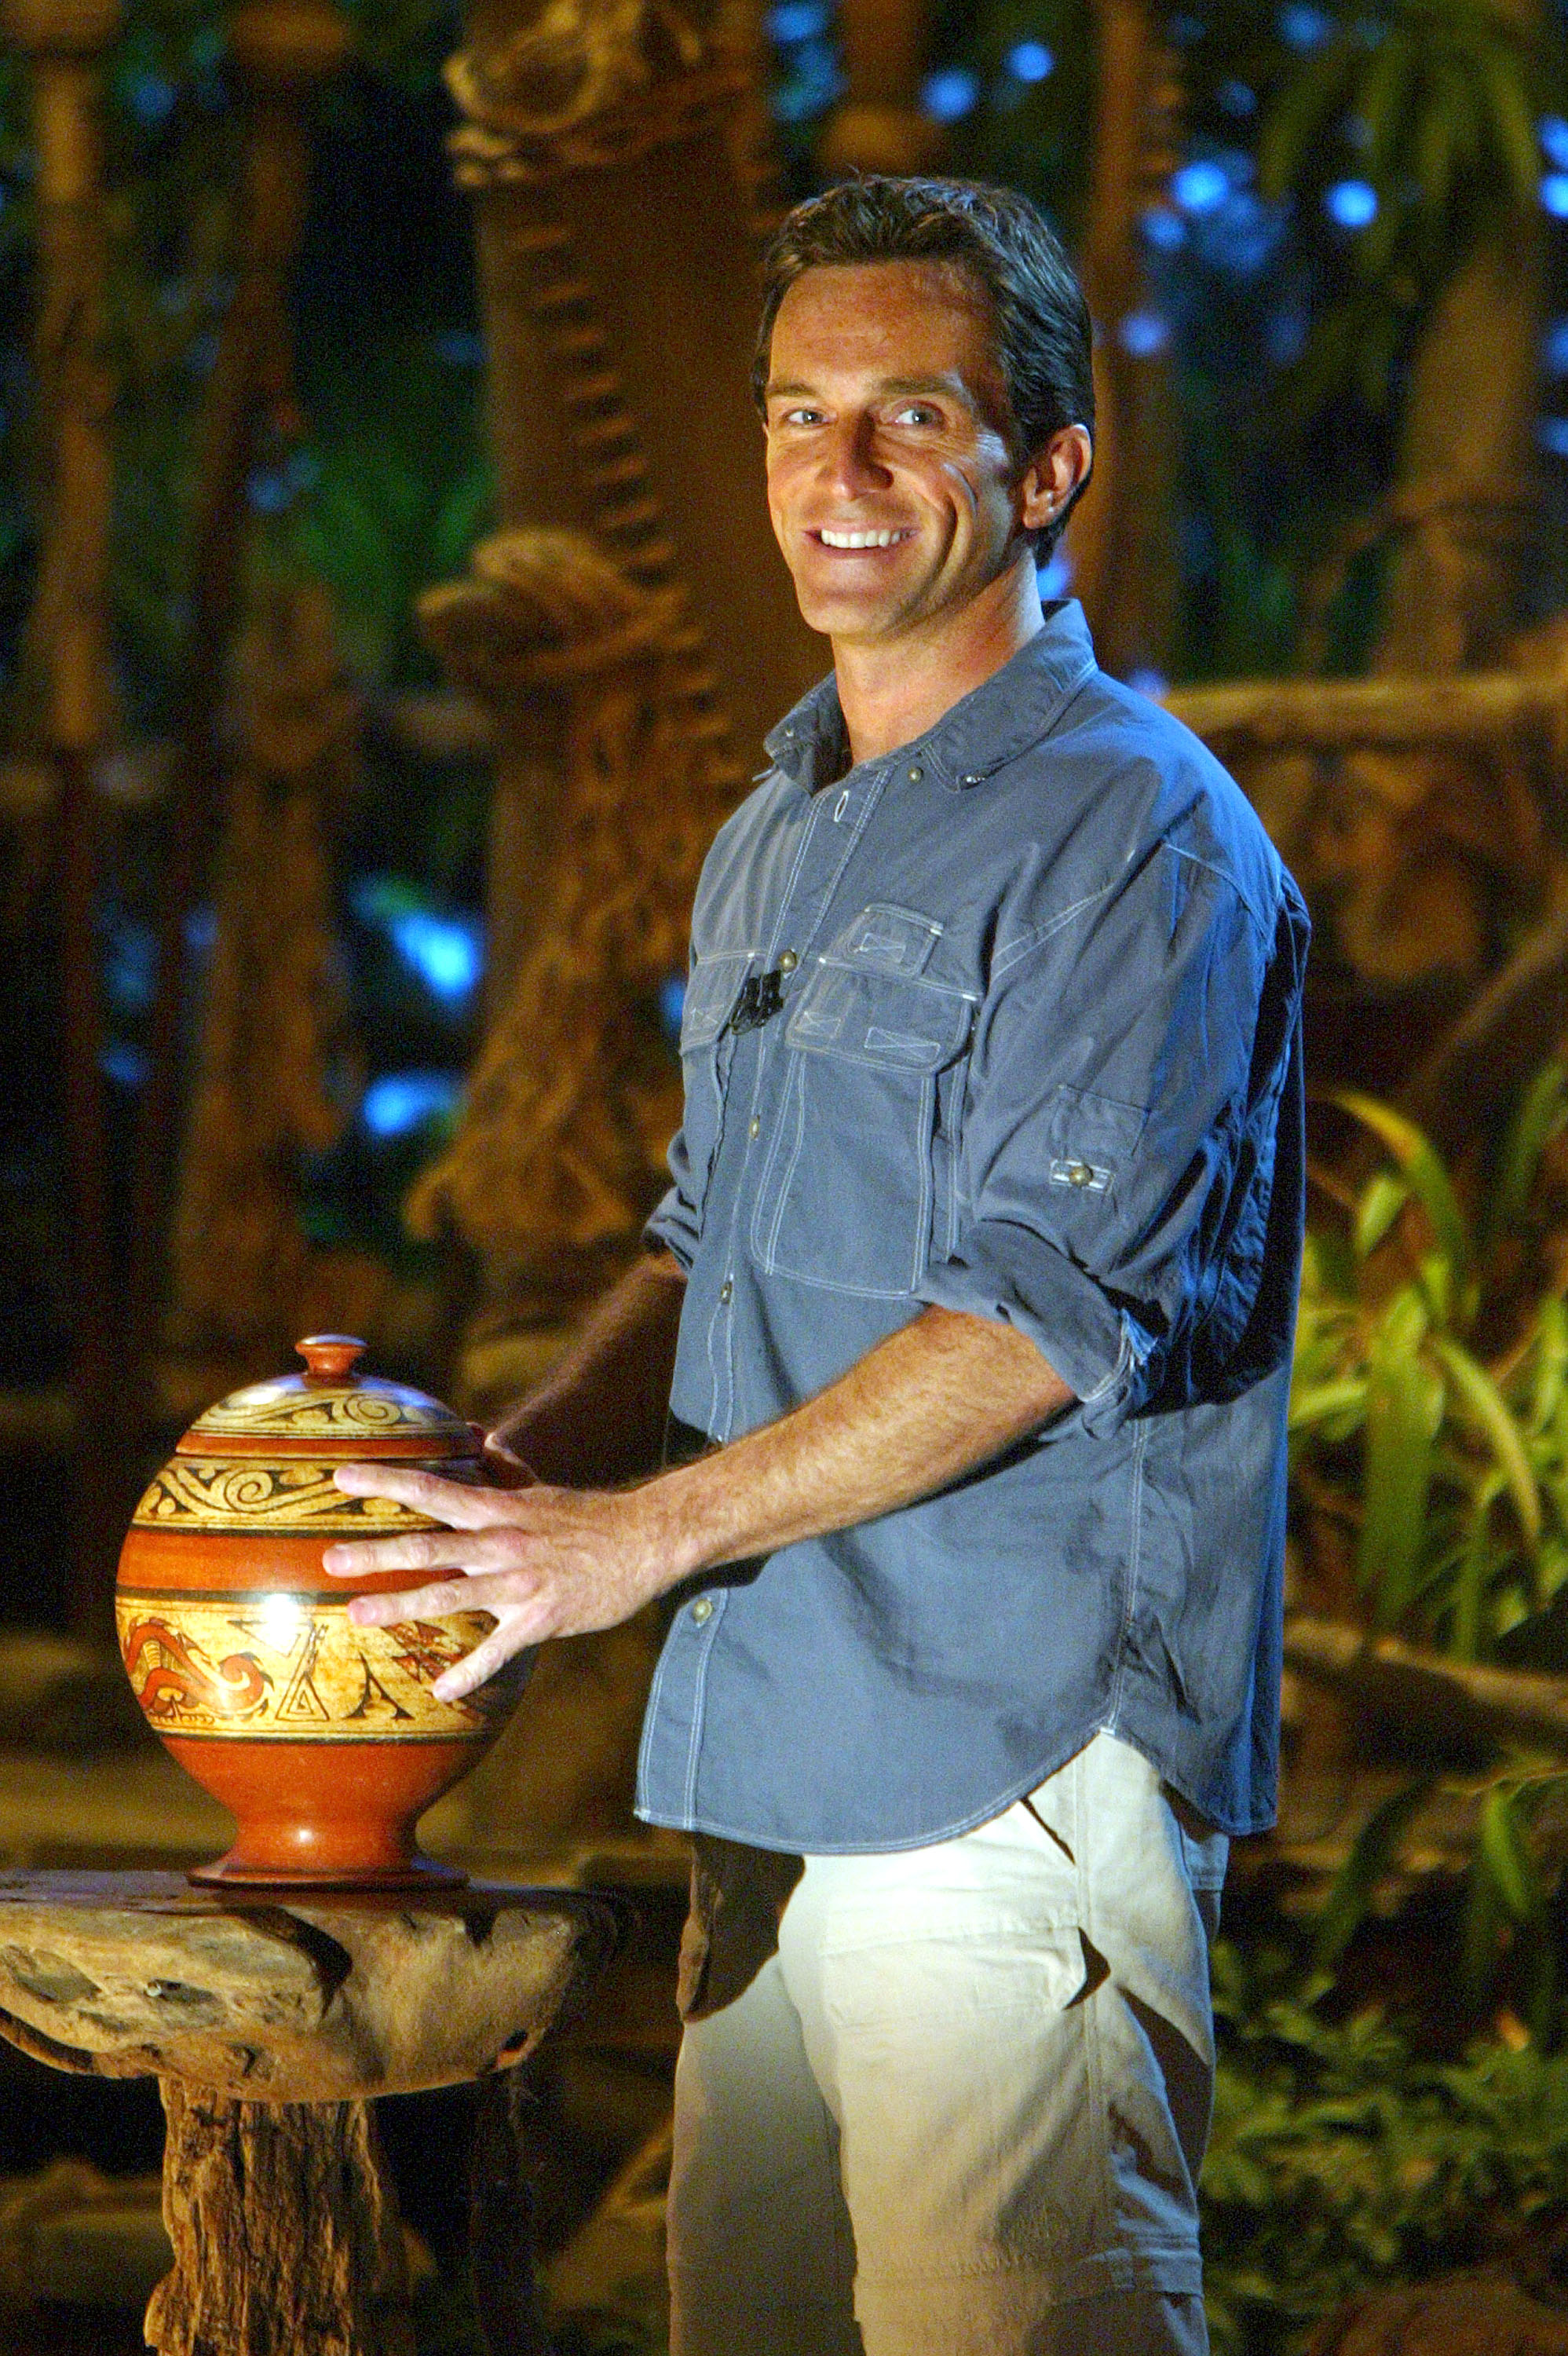 Jeff Probst waited for one and a half years before landing his 'Survivor' job (Photo by Scott Gries/Getty Images)